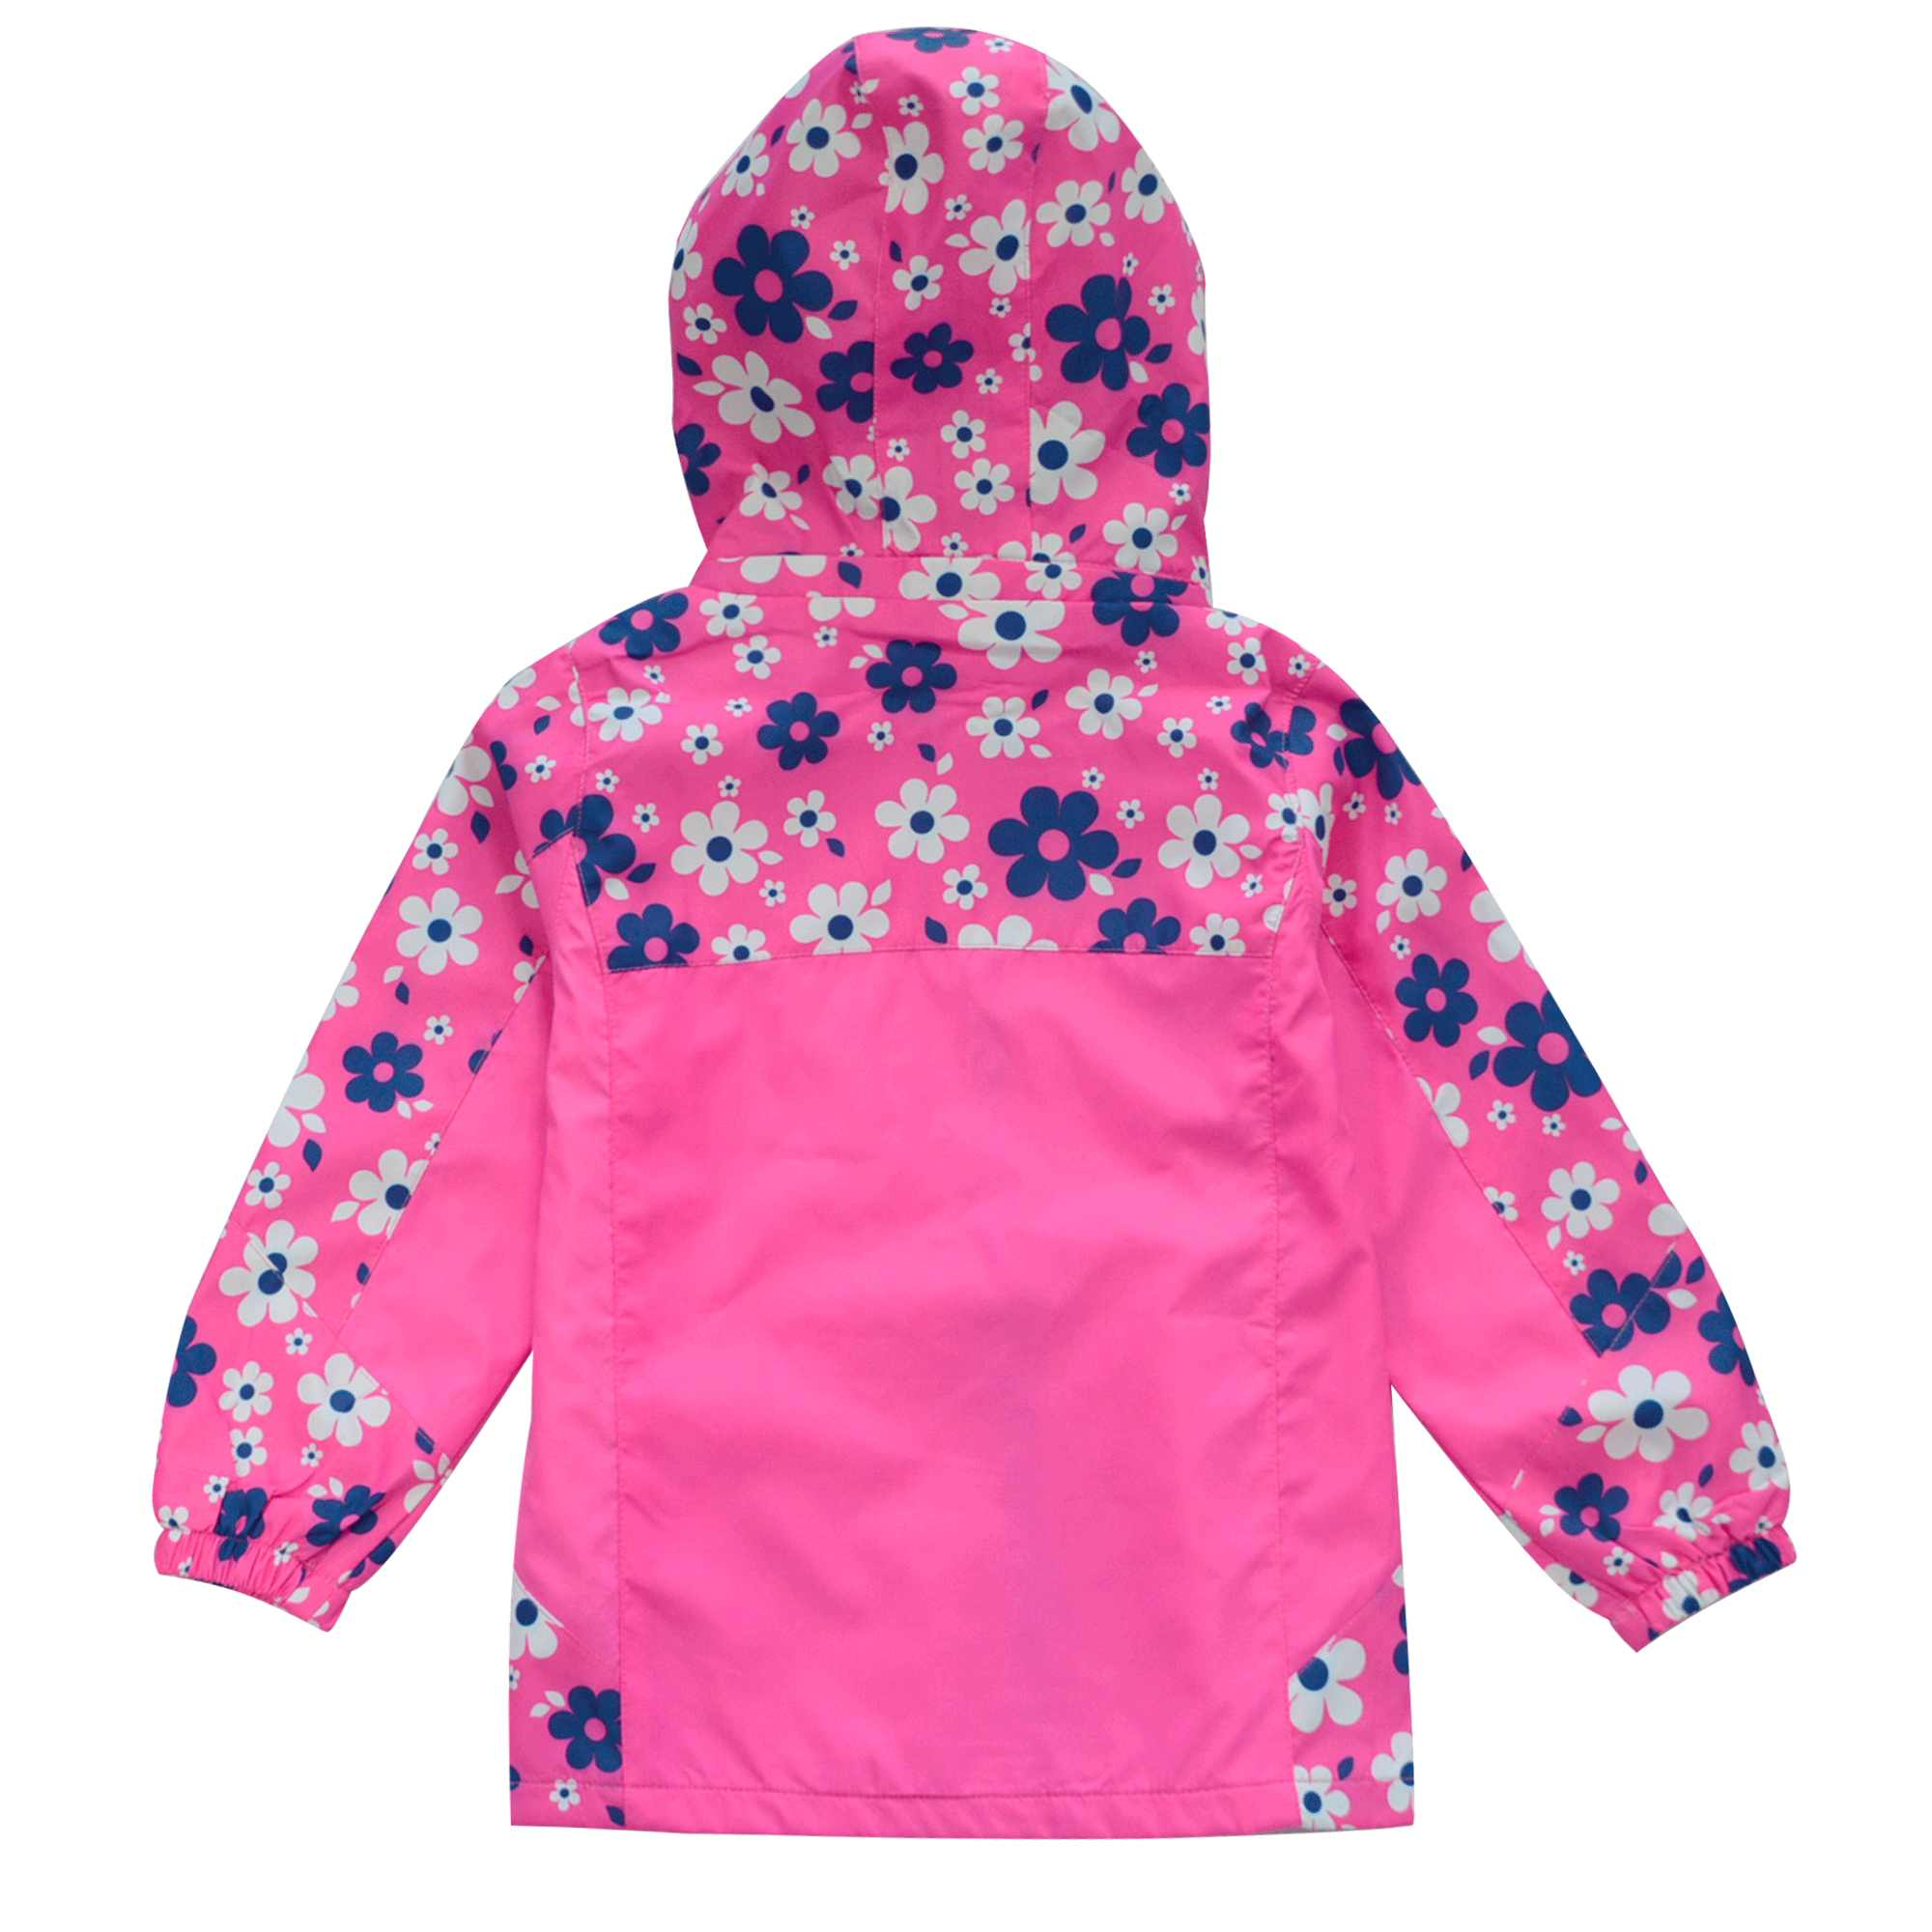 0dbc43b0960e Detail Feedback Questions about KISBINI Jacket for Girls Floral Coat ...